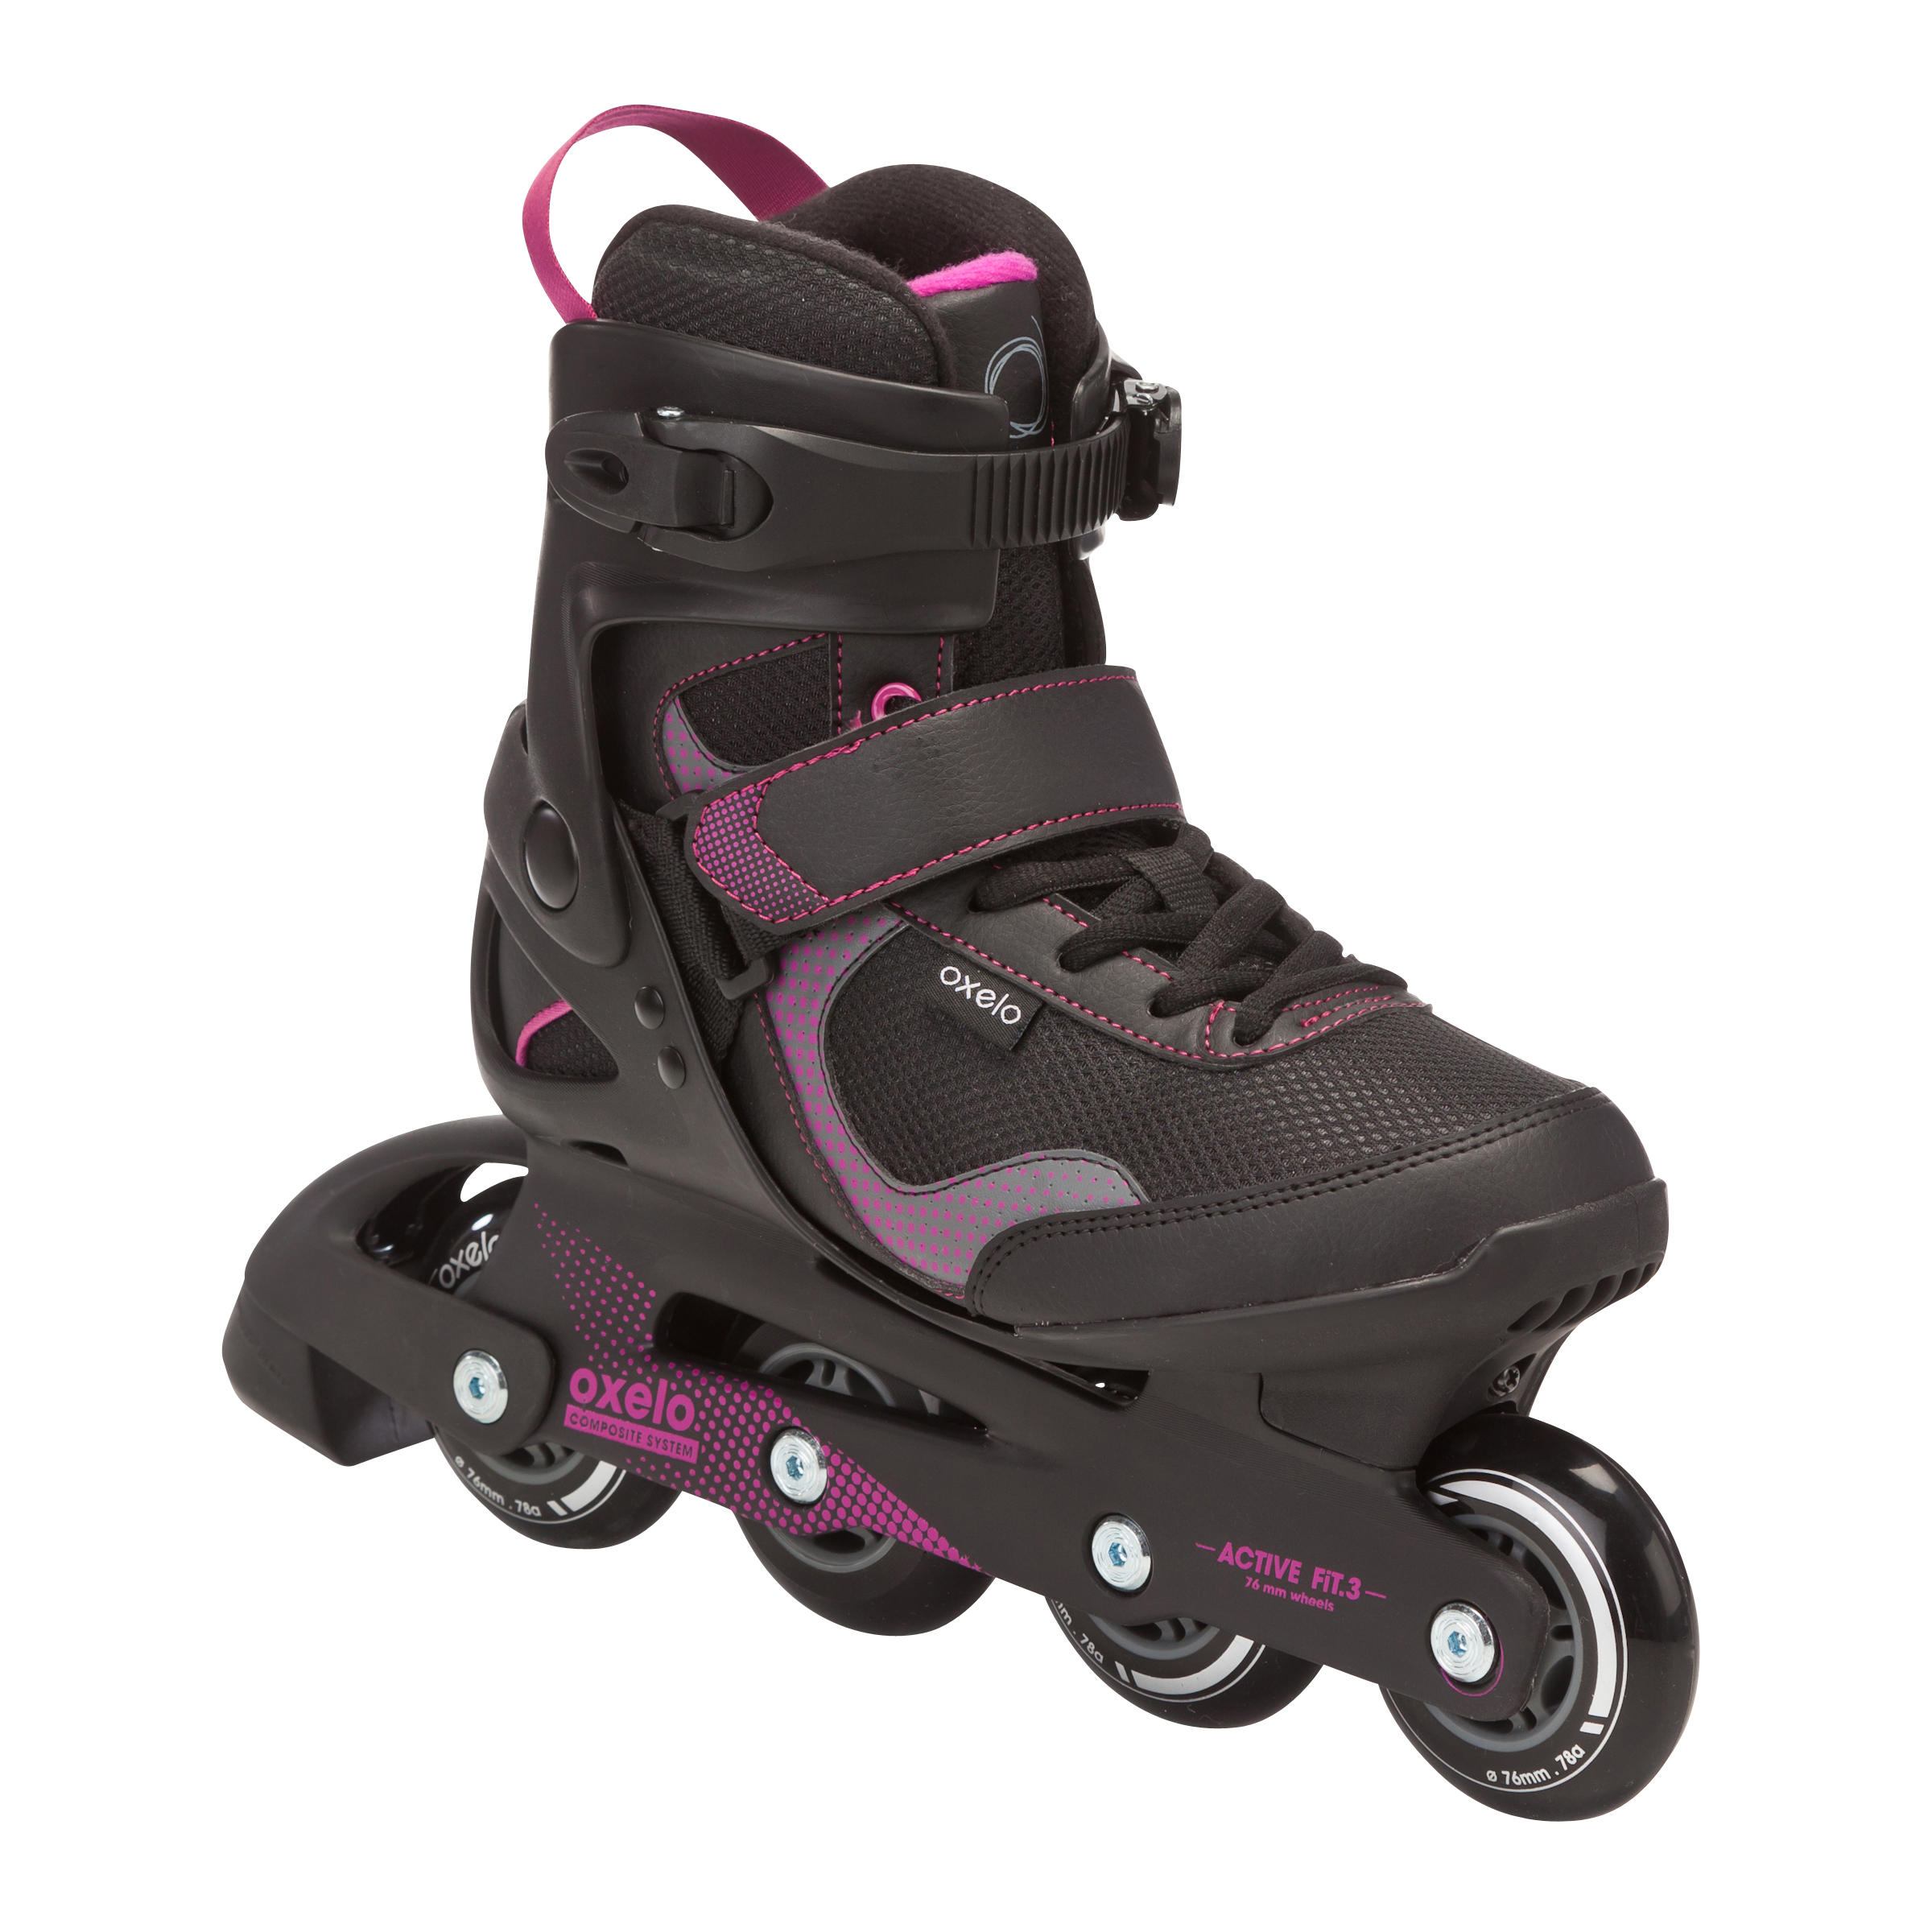 Fit 3 Women's Inline Fitness Skates - Black/Fuchsia